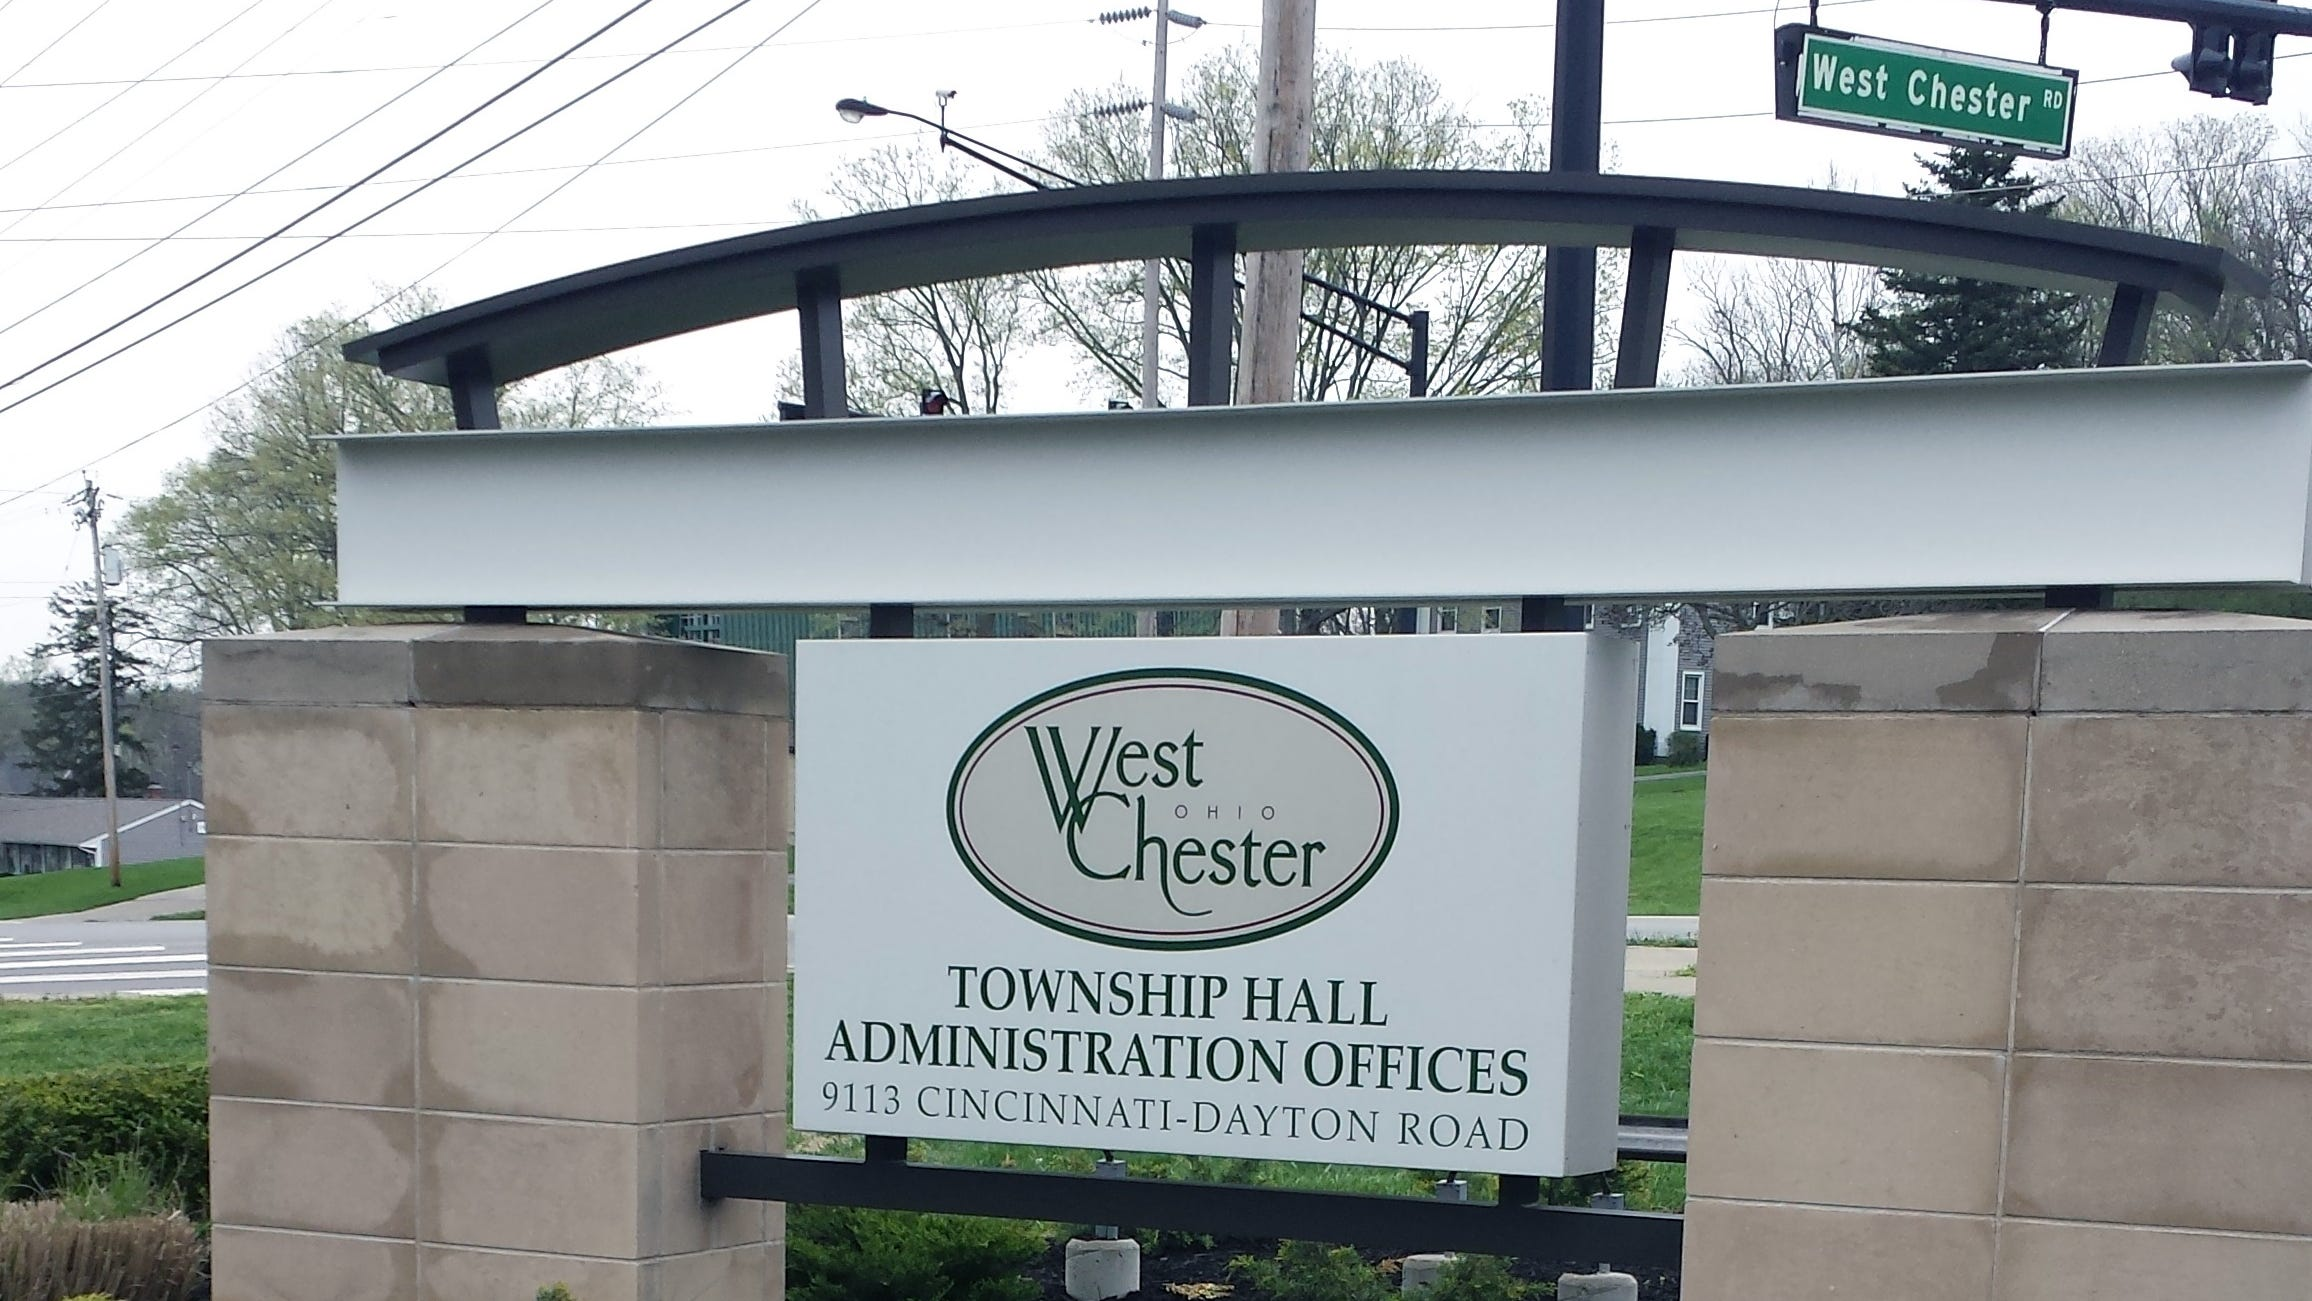 Strip Mall Fatigue West Chester Neighbors Dont Like Mixed Use Plan